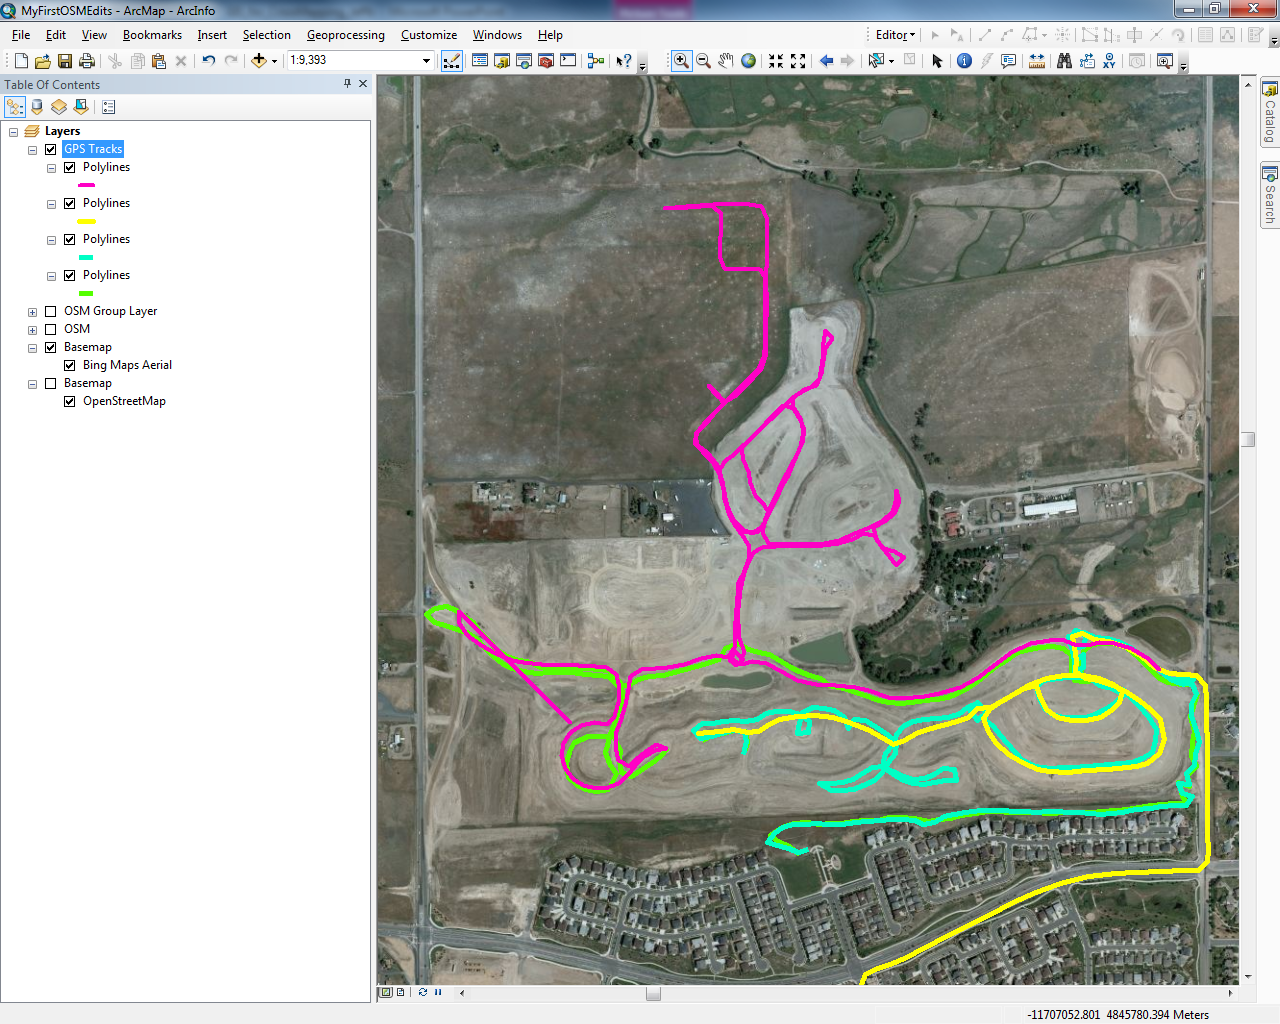 Hello Map! – Getting started with the ArcGIS Editor for OpenStreetMap